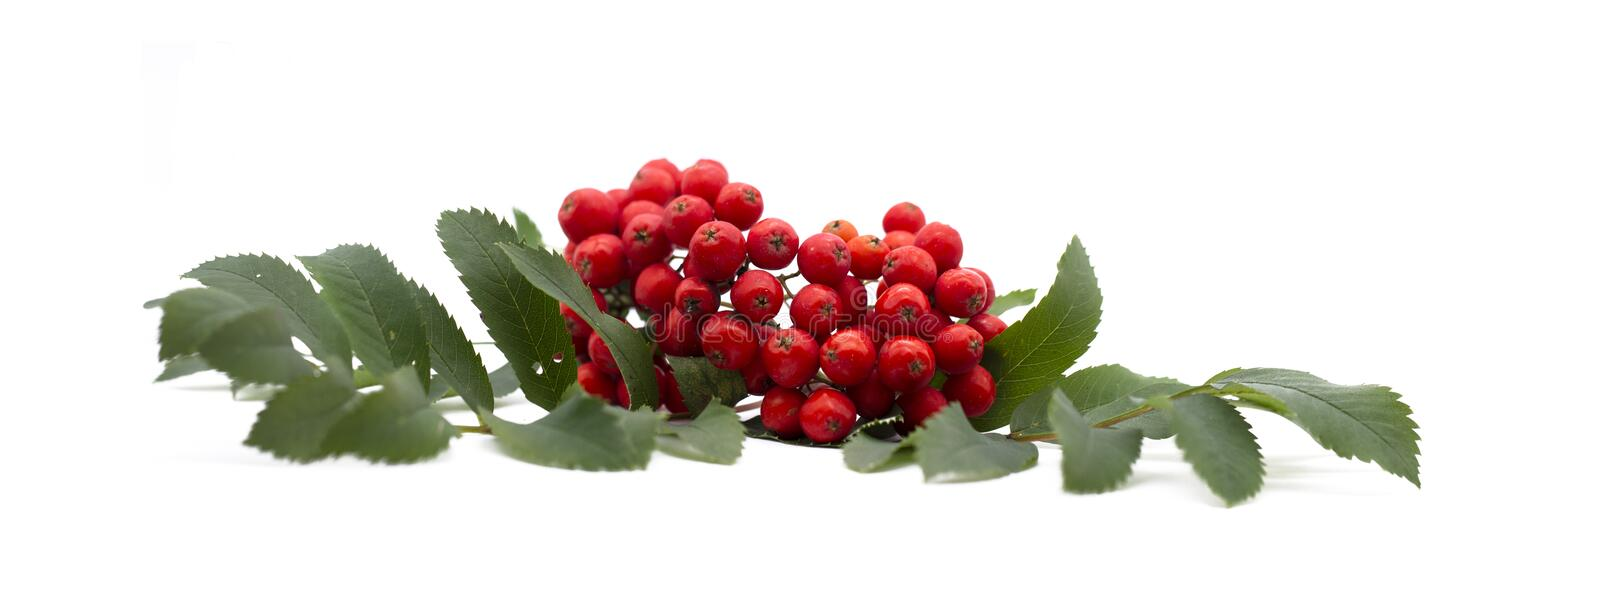 Rowan berry ,mountain ash, Sorbus aucuparia, isolated on a white background. Brush the red Rowan with green leaves royalty free stock photography